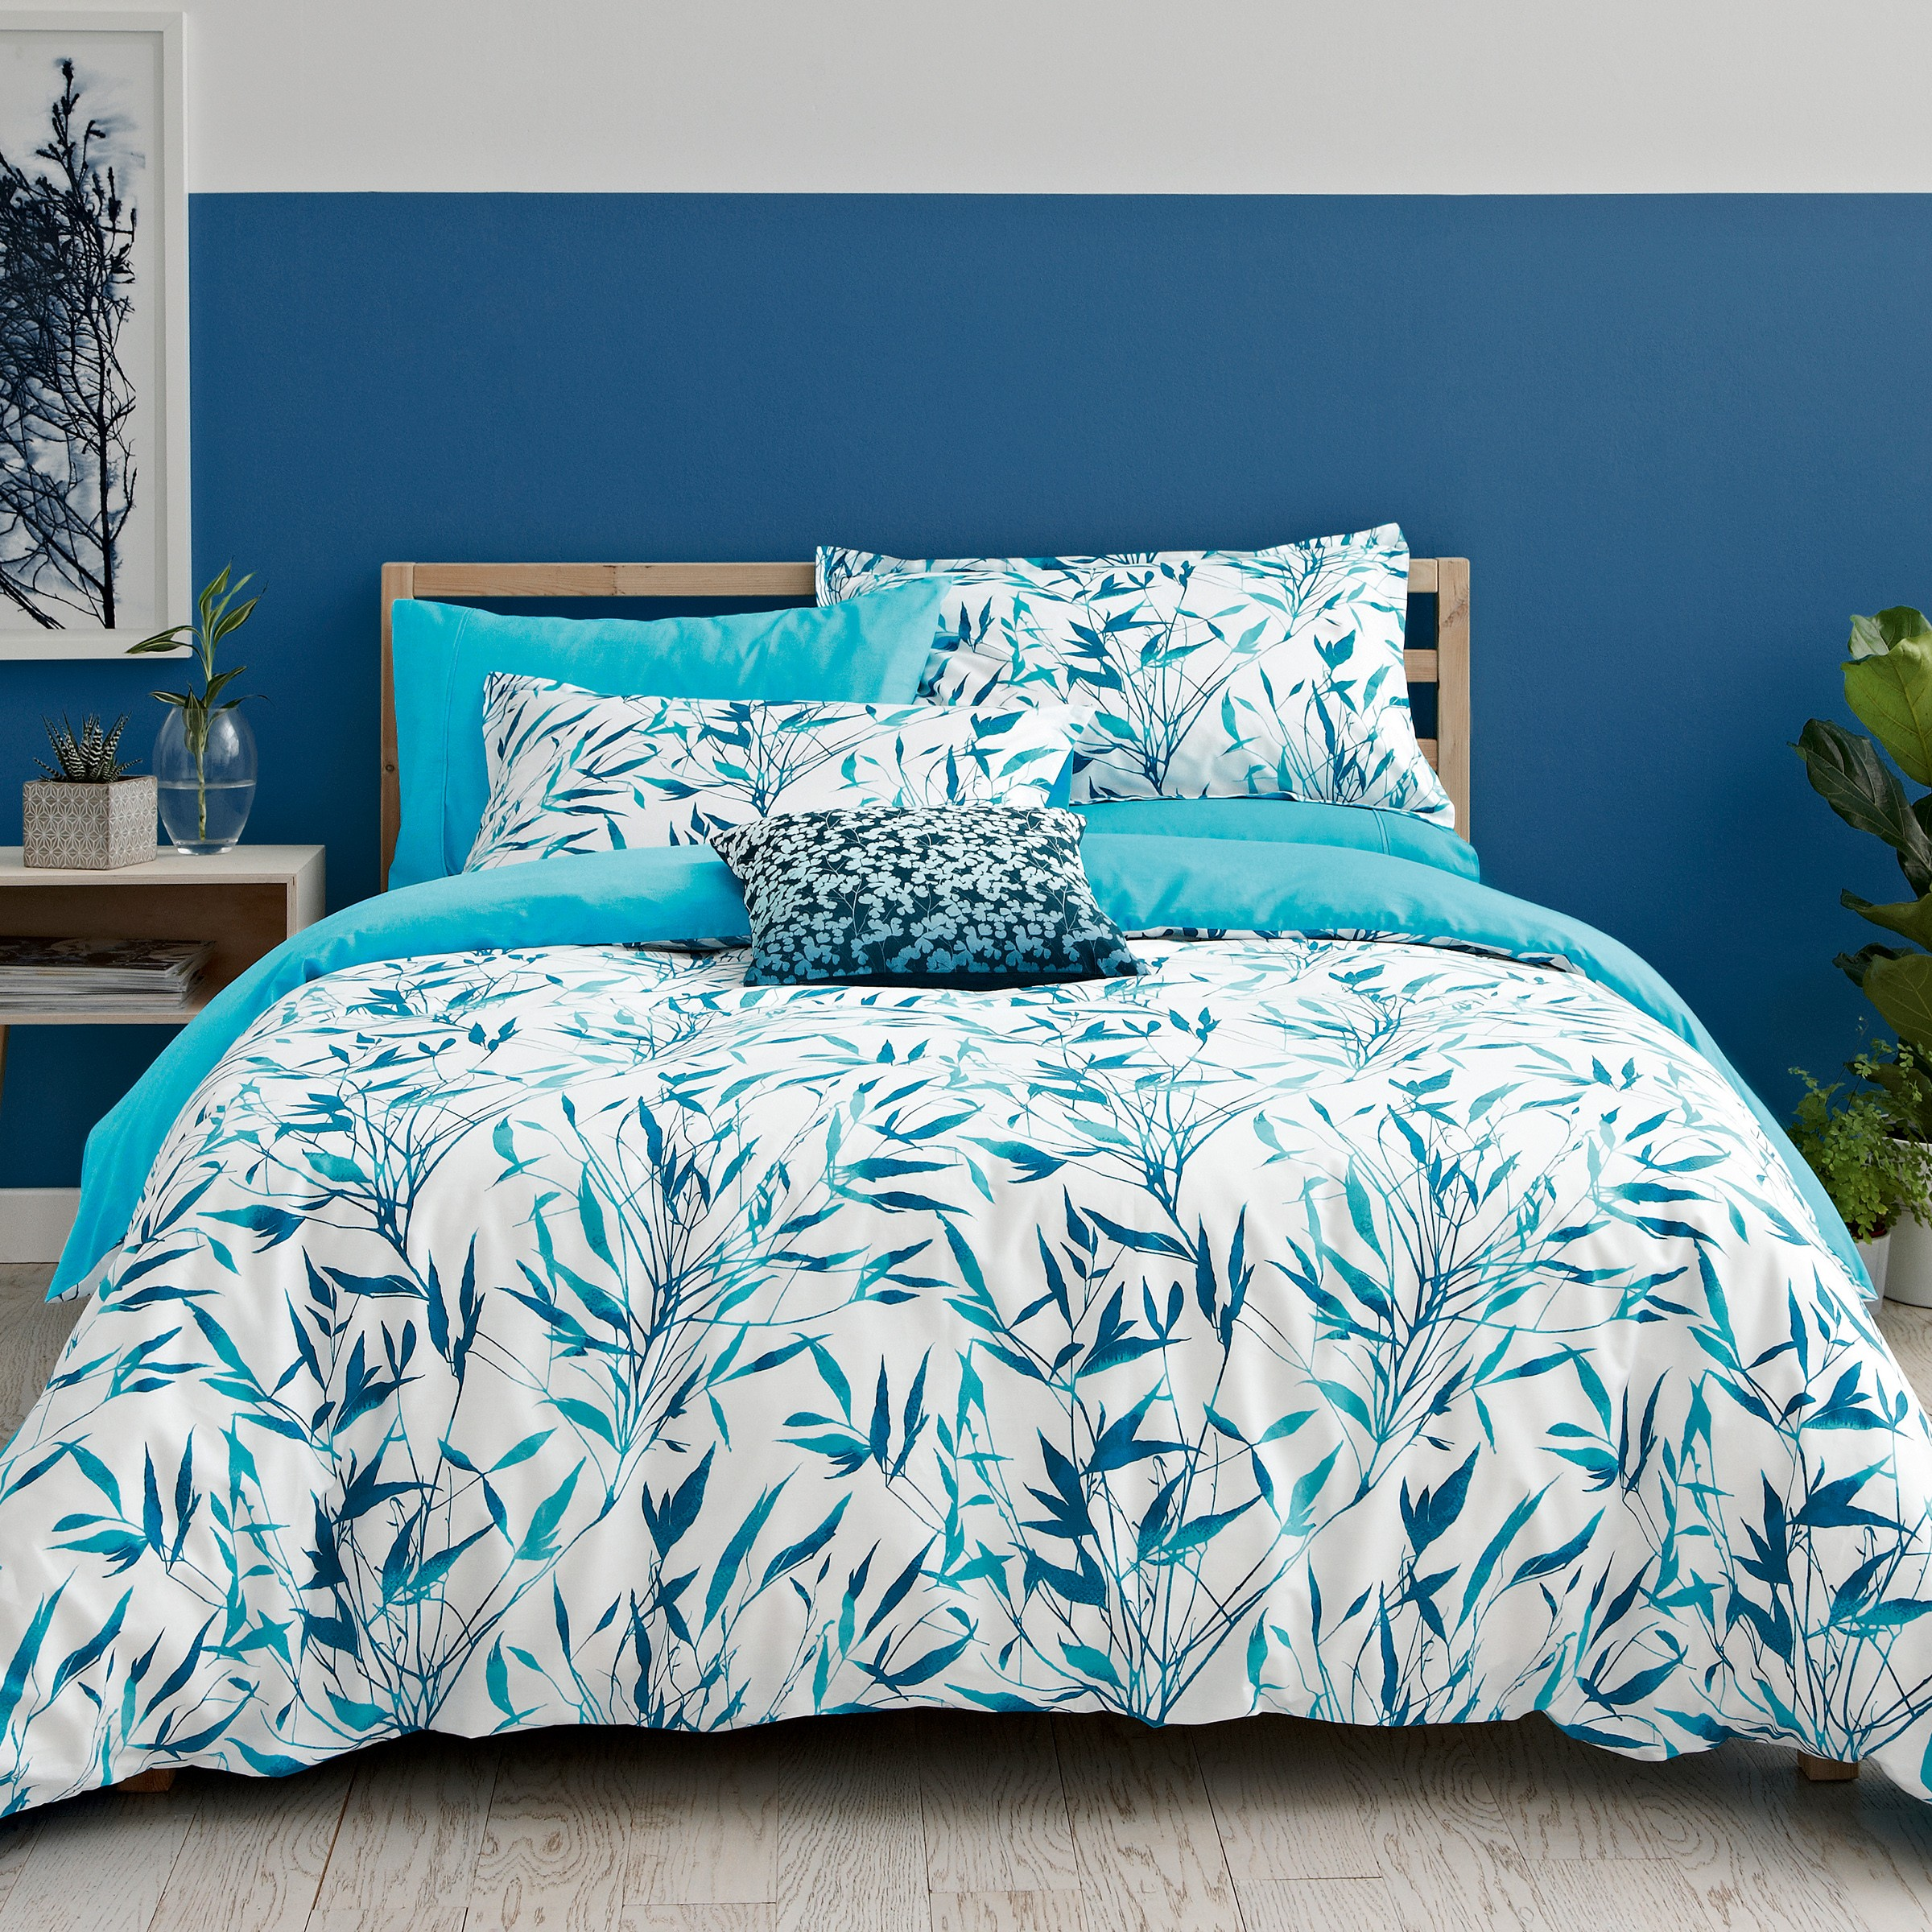 Turquoise bedding and plus beautiful bedding sets and plus luxury bedding